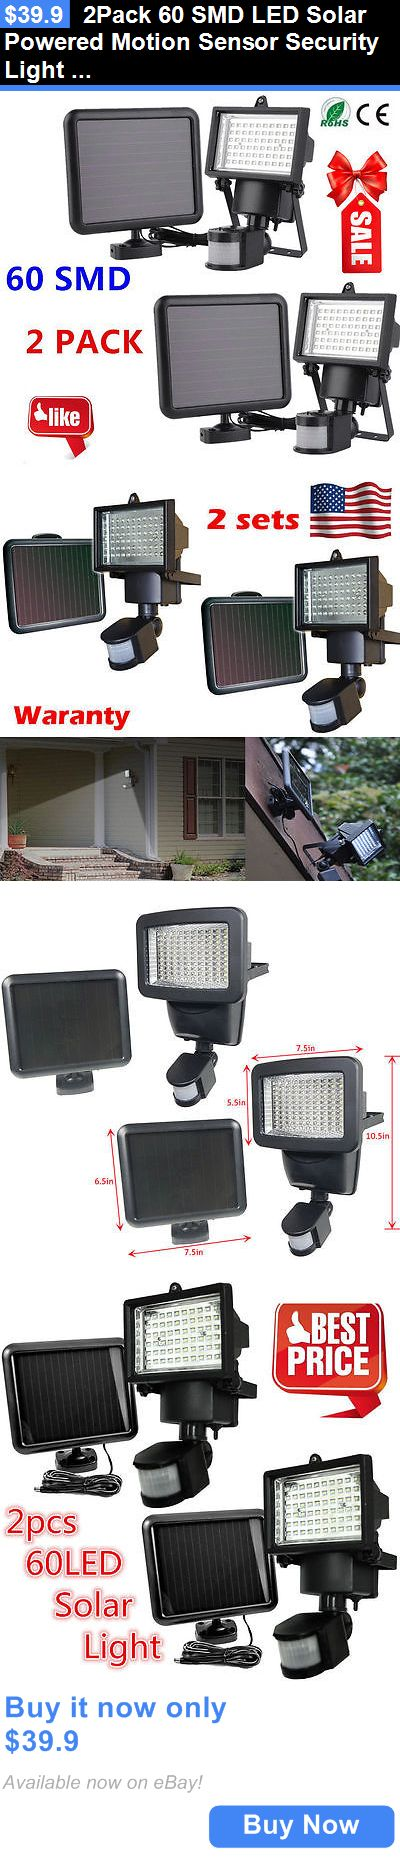 farm and garden: 2Pack 60 Smd Led Solar Powered Motion Sensor Security Light Flood Light Lamp Hms BUY IT NOW ONLY: $39.9